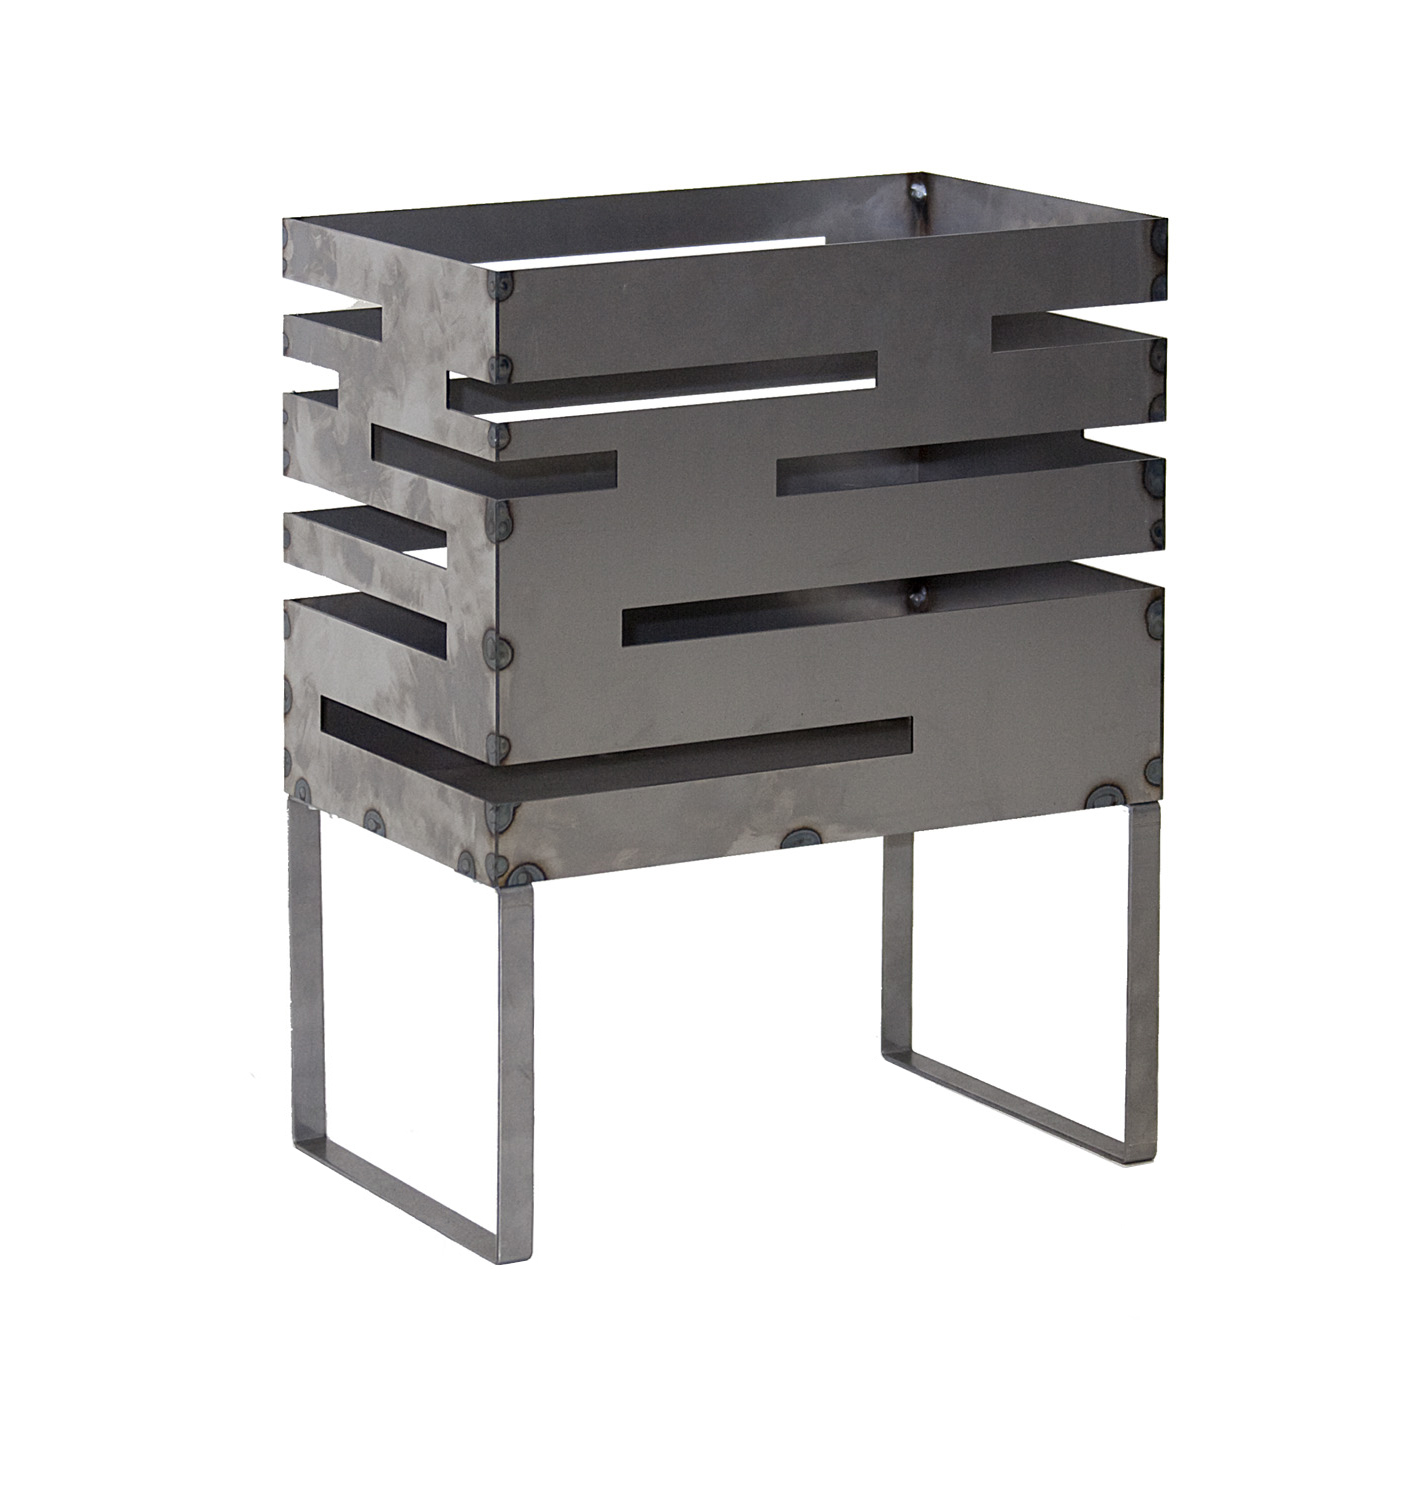 Firebasket Urban with base plate in 2 sizes